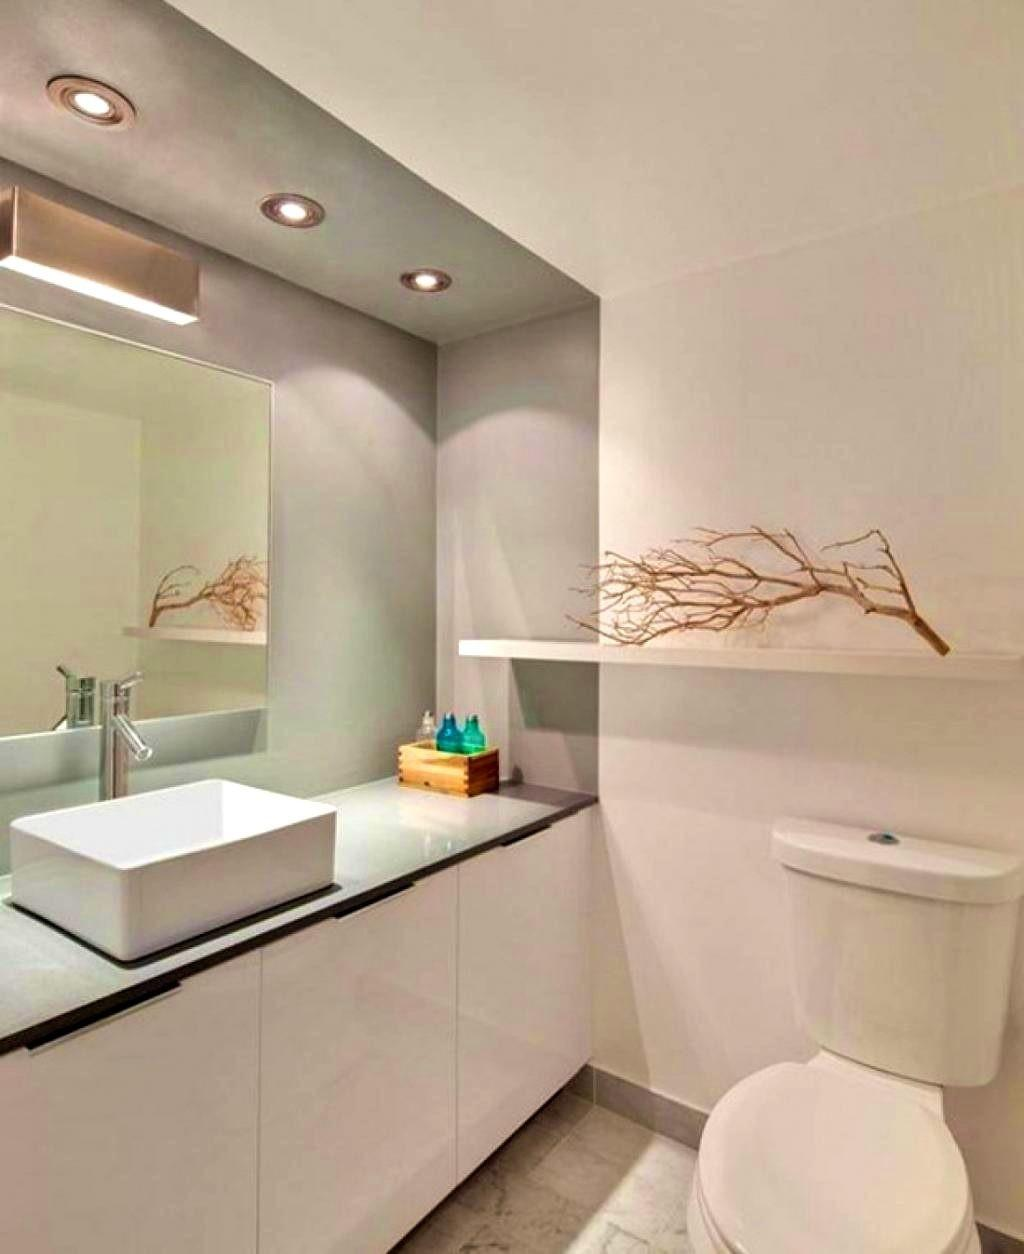 Indian Bathroom Designs Small Without, Best Bathroom Designs In India